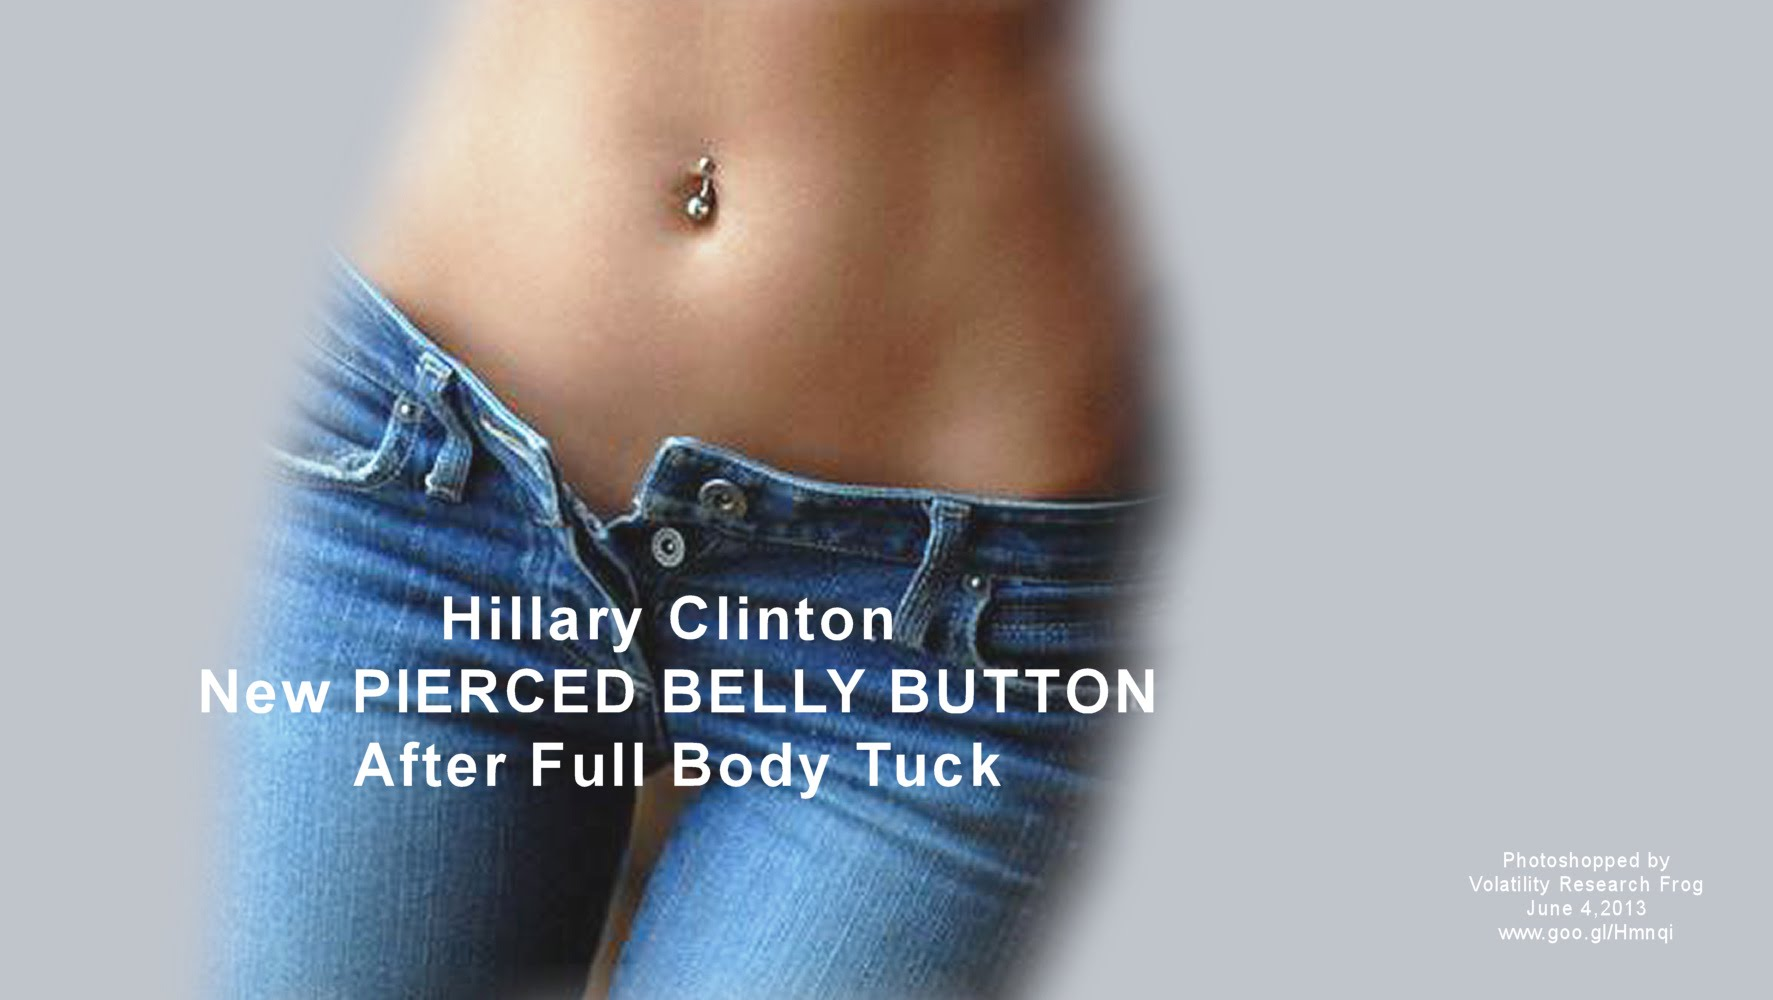 Hillary Clinton New PIERCED BELLY BUTTON After Full Body Tuck (Volatility Research) 1000h2